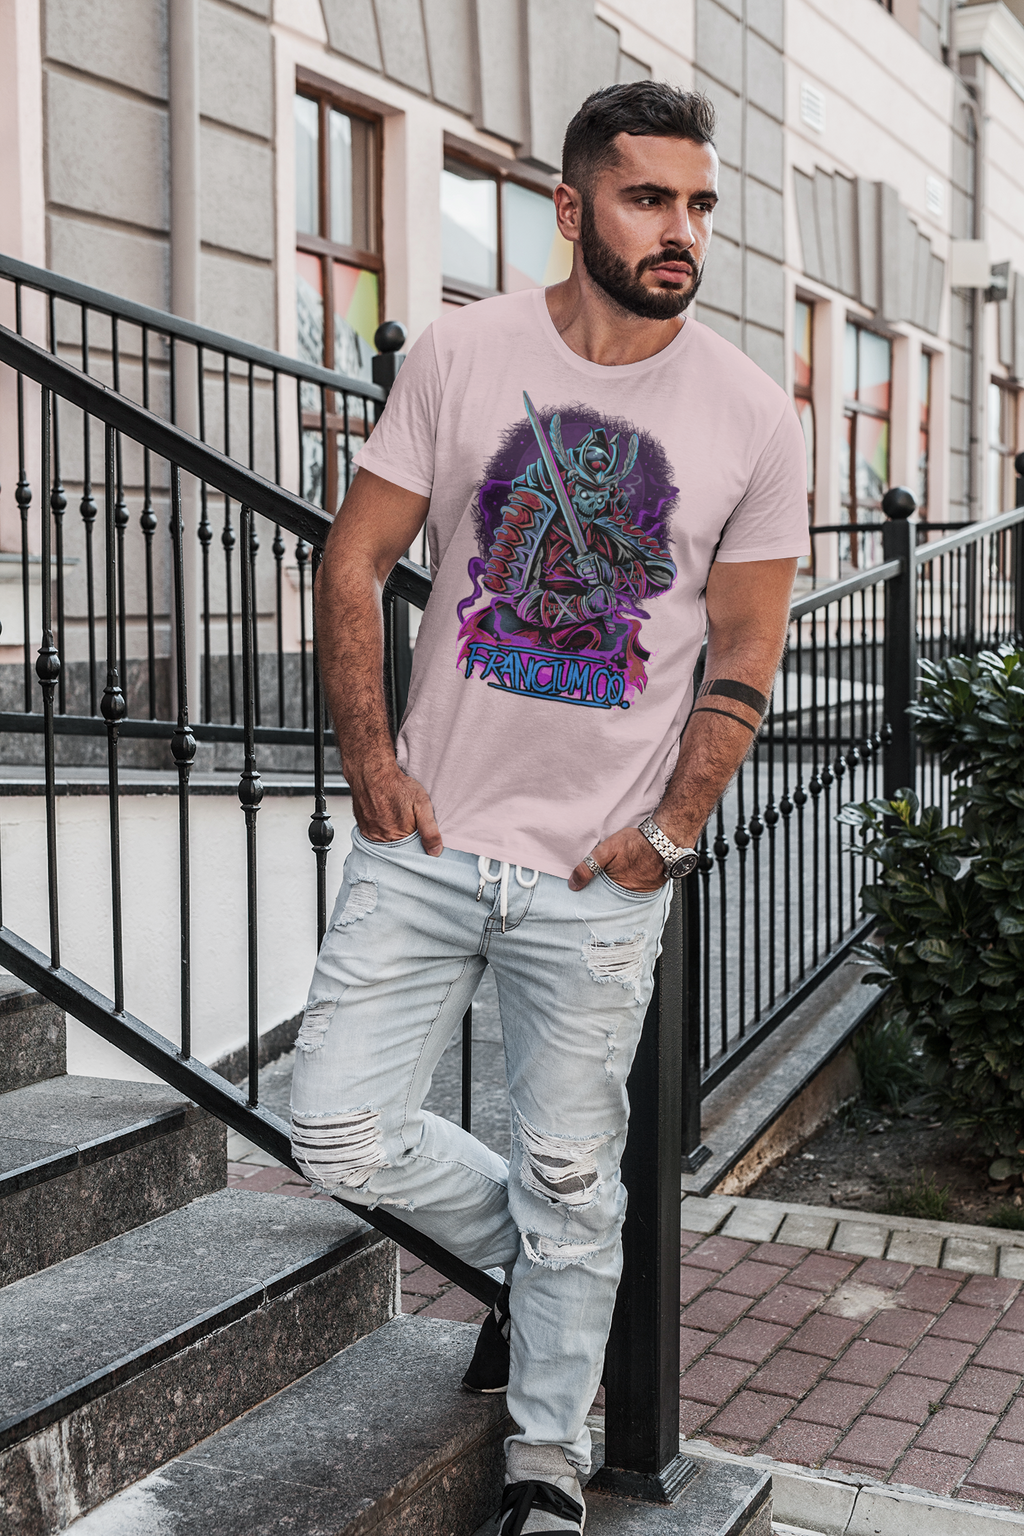 Okyoito, The Fierce - Men's T-shirt - Francium Co.